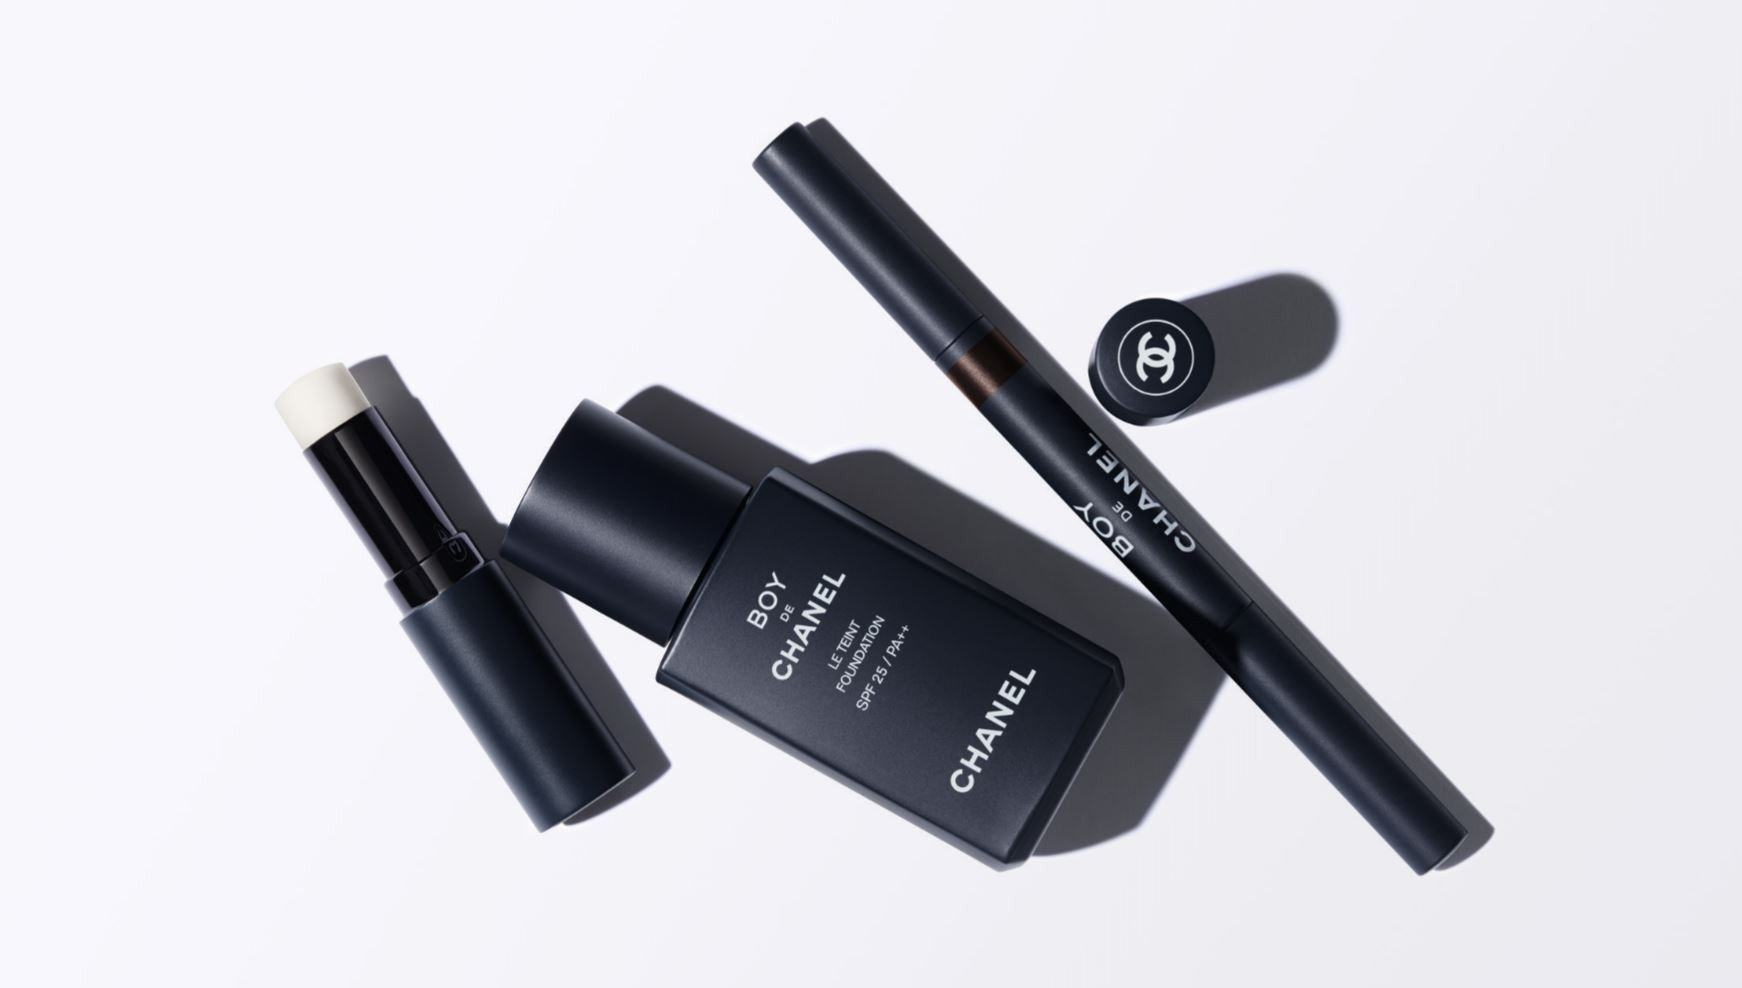 16e6b21ed7d0 Chanel to launch Boy de Chanel – a makeup line for men | South China  Morning Post